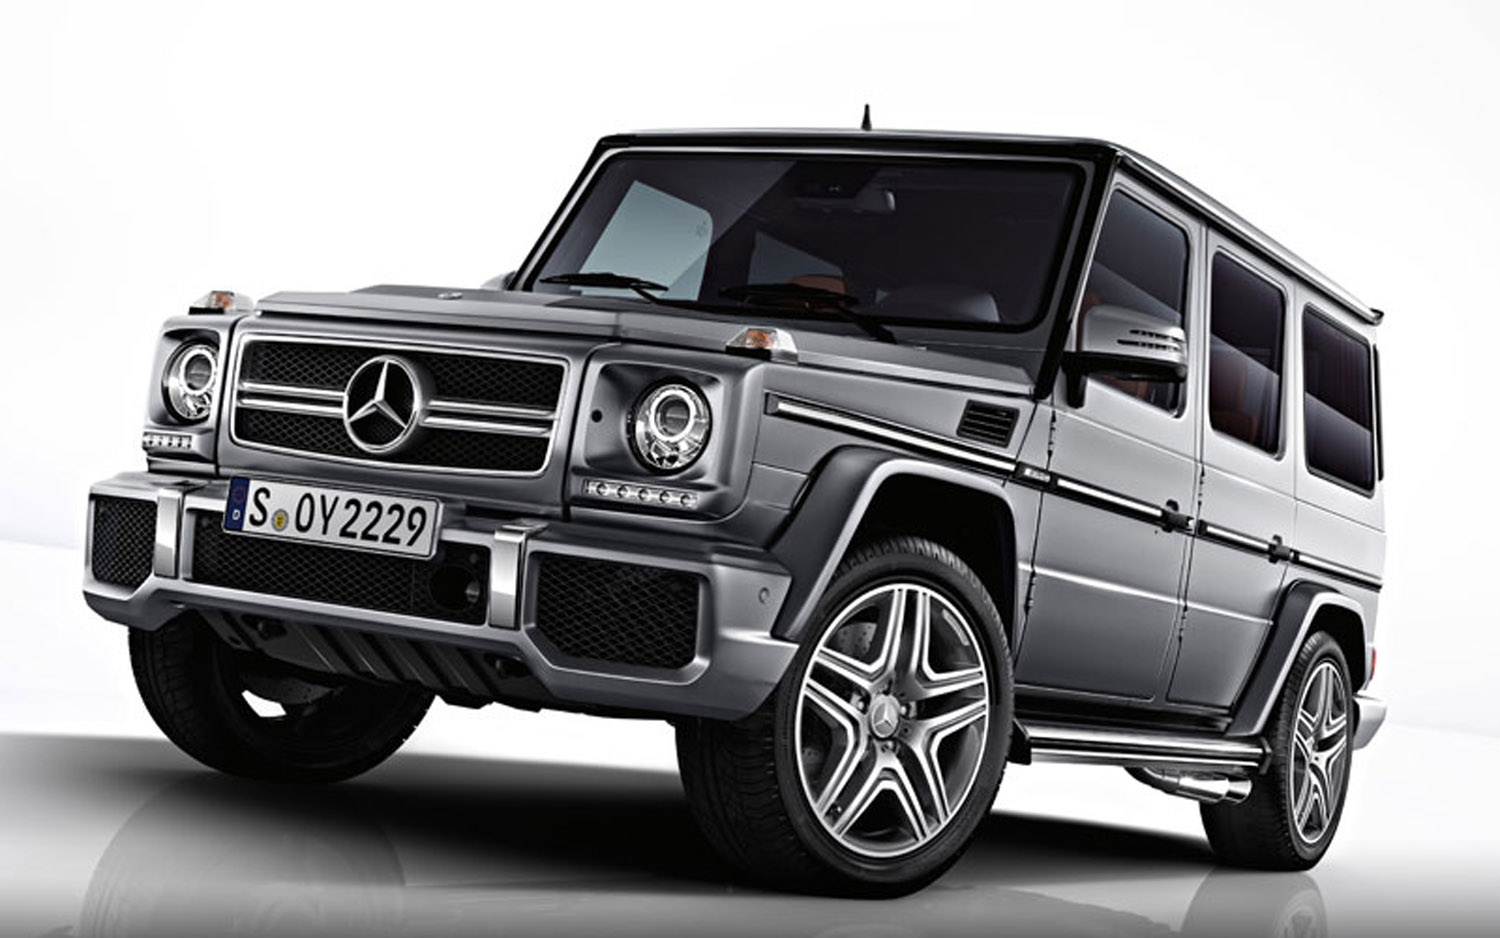 confirmed: 2013 mercedes-benz g65 amg not u.s.-bound, will cost over